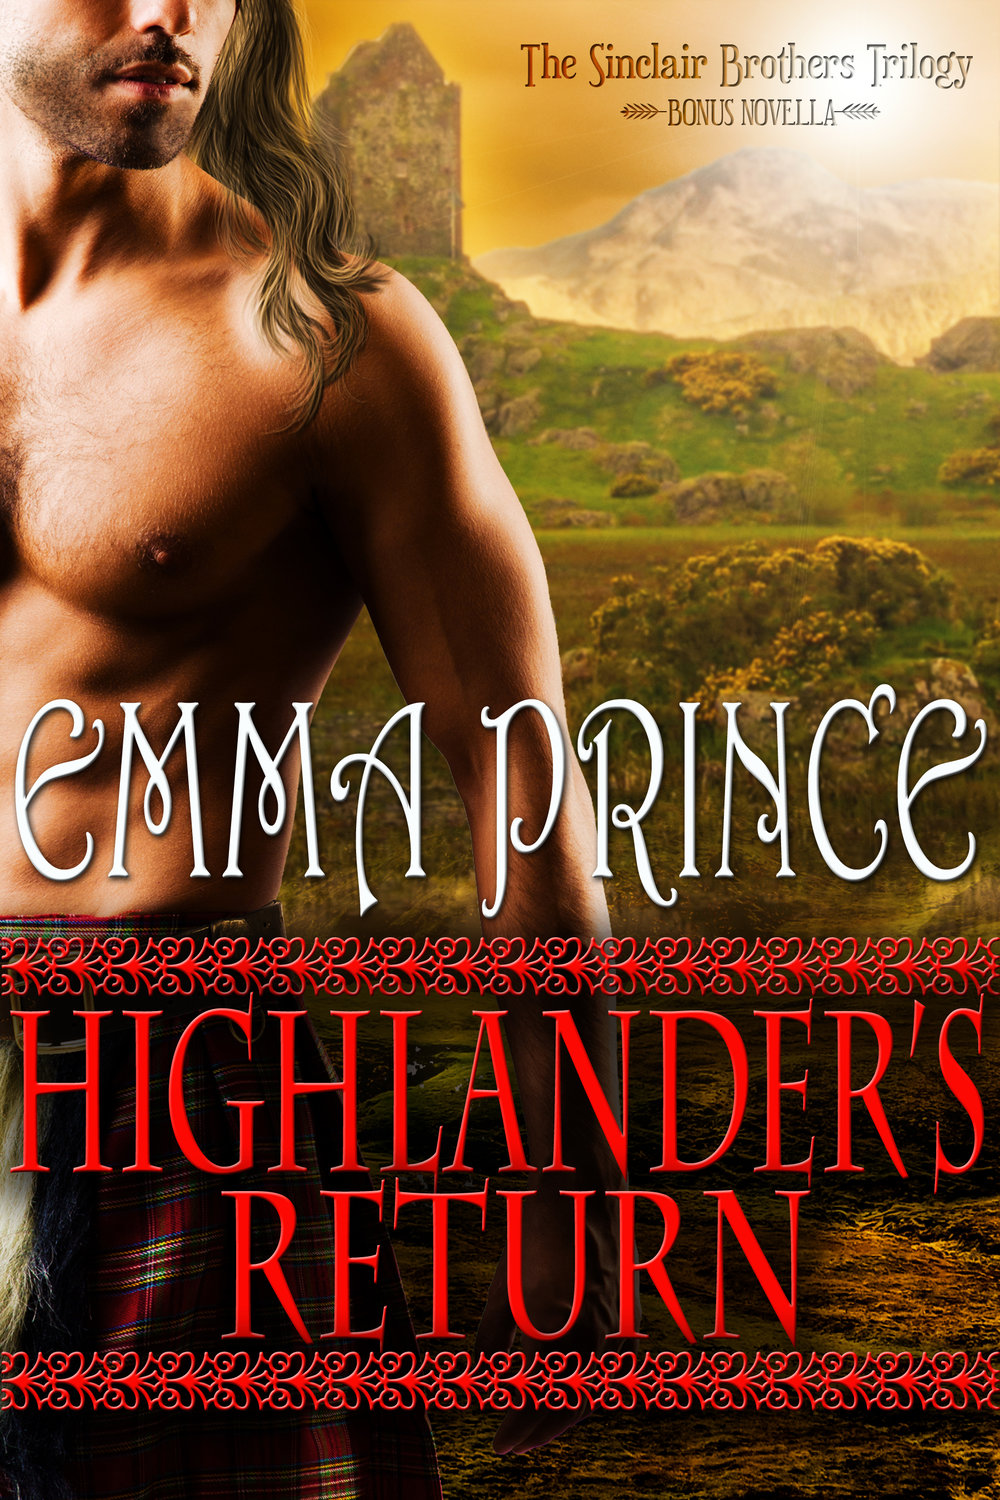 Highlander's Return (Book 2.5)